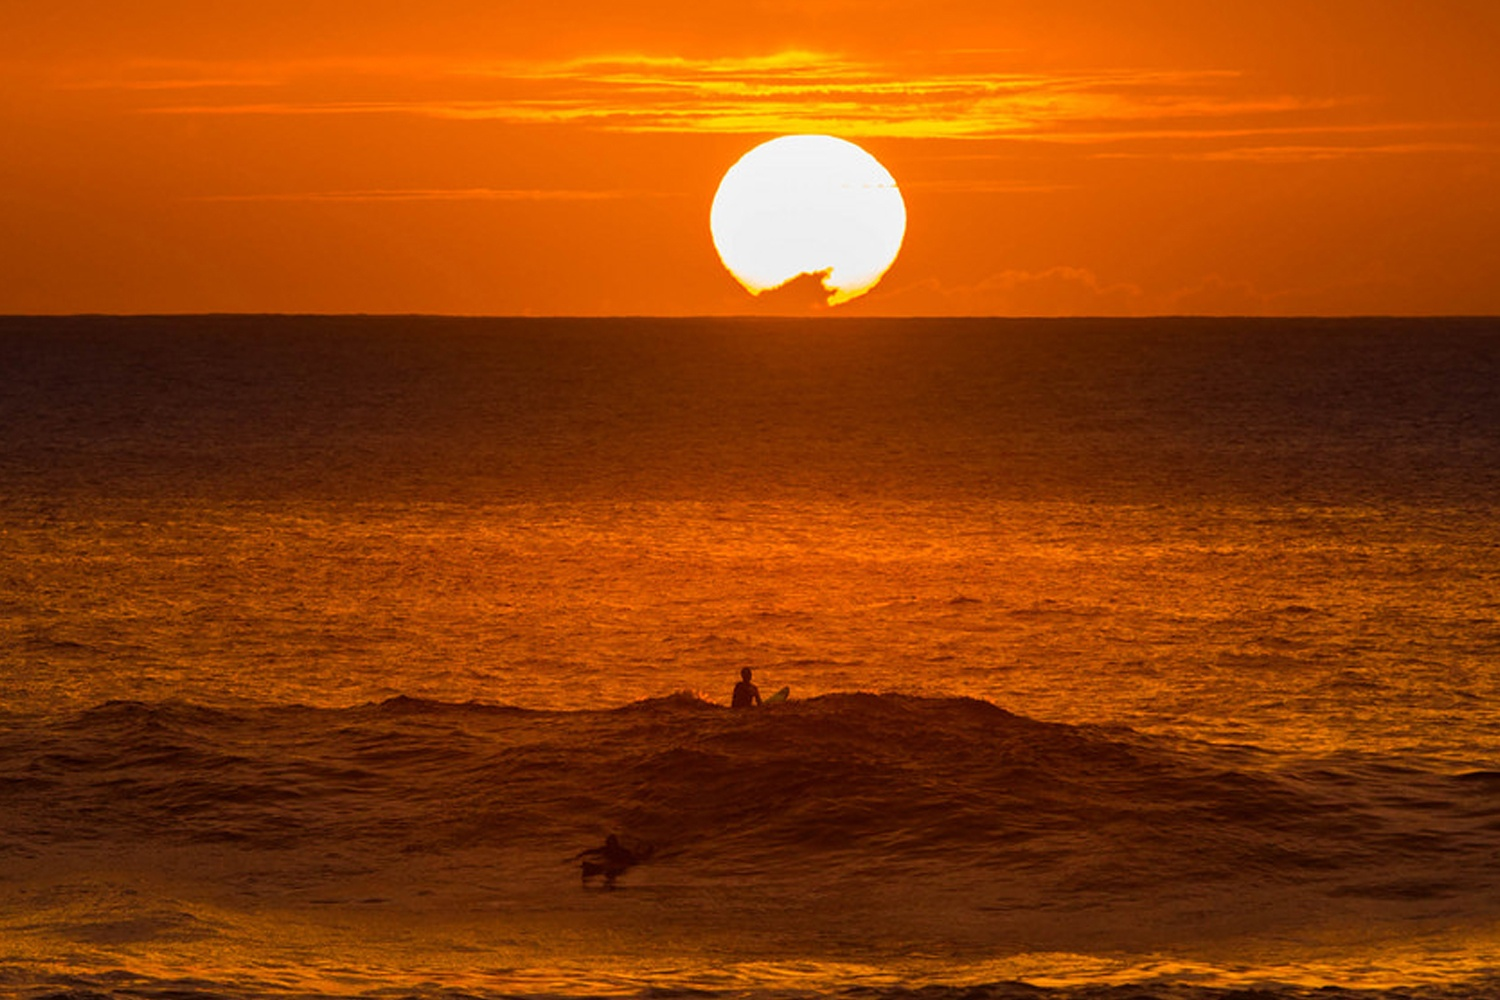 Sunset surfing in Oahu (Credit: Anthony Quintano)